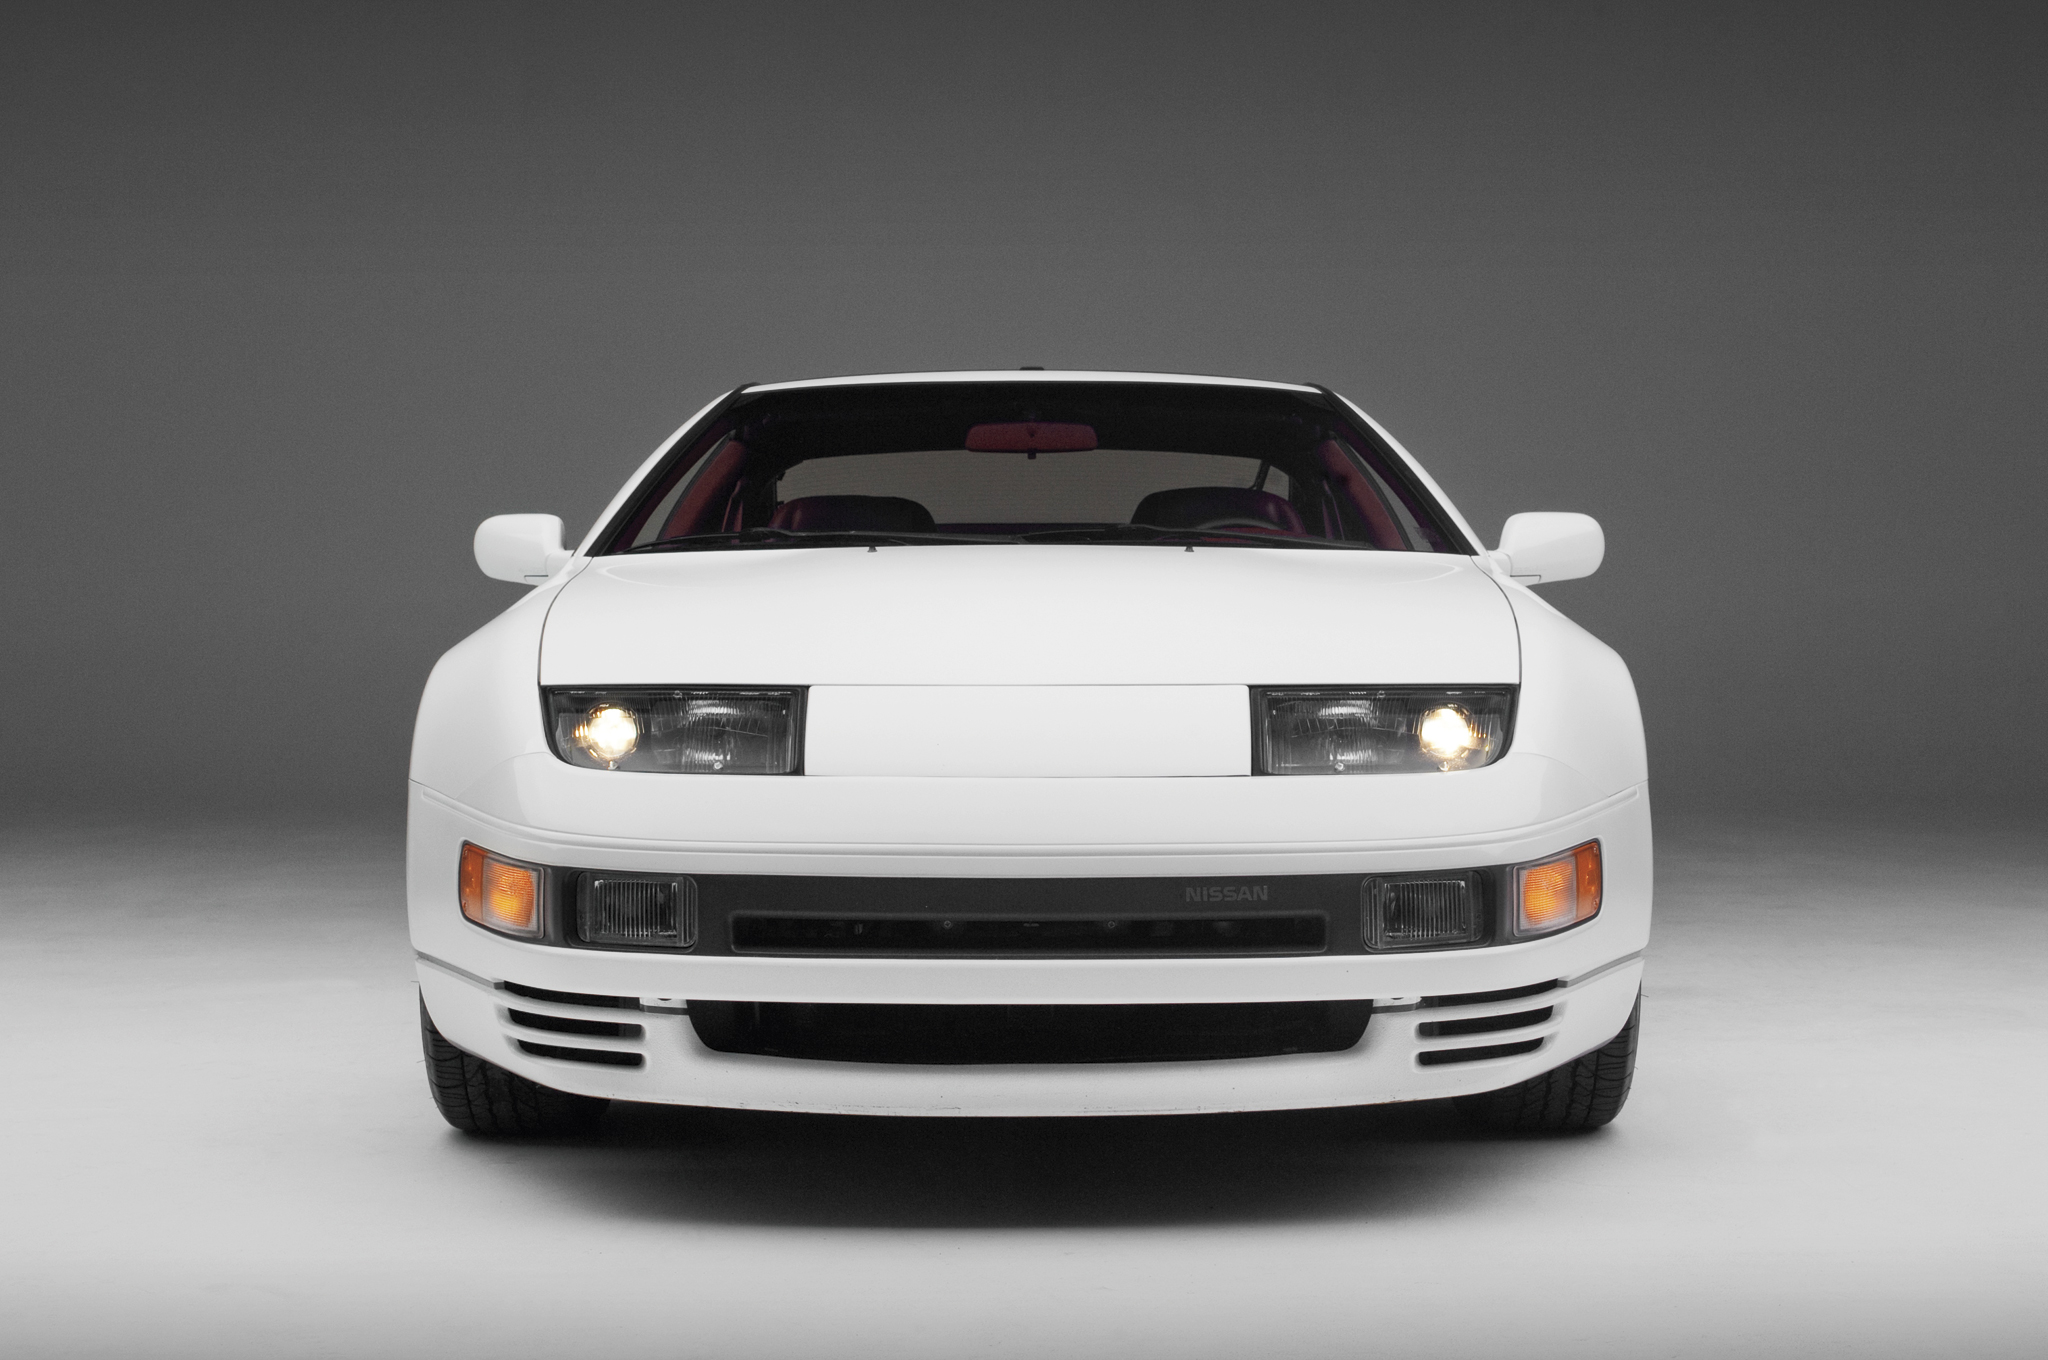 1990-1996 Nissan 300ZX Buyer's Guide - Motor Trend Clic ... on 93 g20 engine, 93 impreza engine, 93 mustang engine, 93 quest engine, 93 camry engine, 93 accord engine, 93 integra engine, 93 legacy engine, 93 supra engine, 93 sentra se-r engine, 93 corvette engine, 93 nissan engine, 93 corolla engine, 93 civic engine, 93 miata engine,